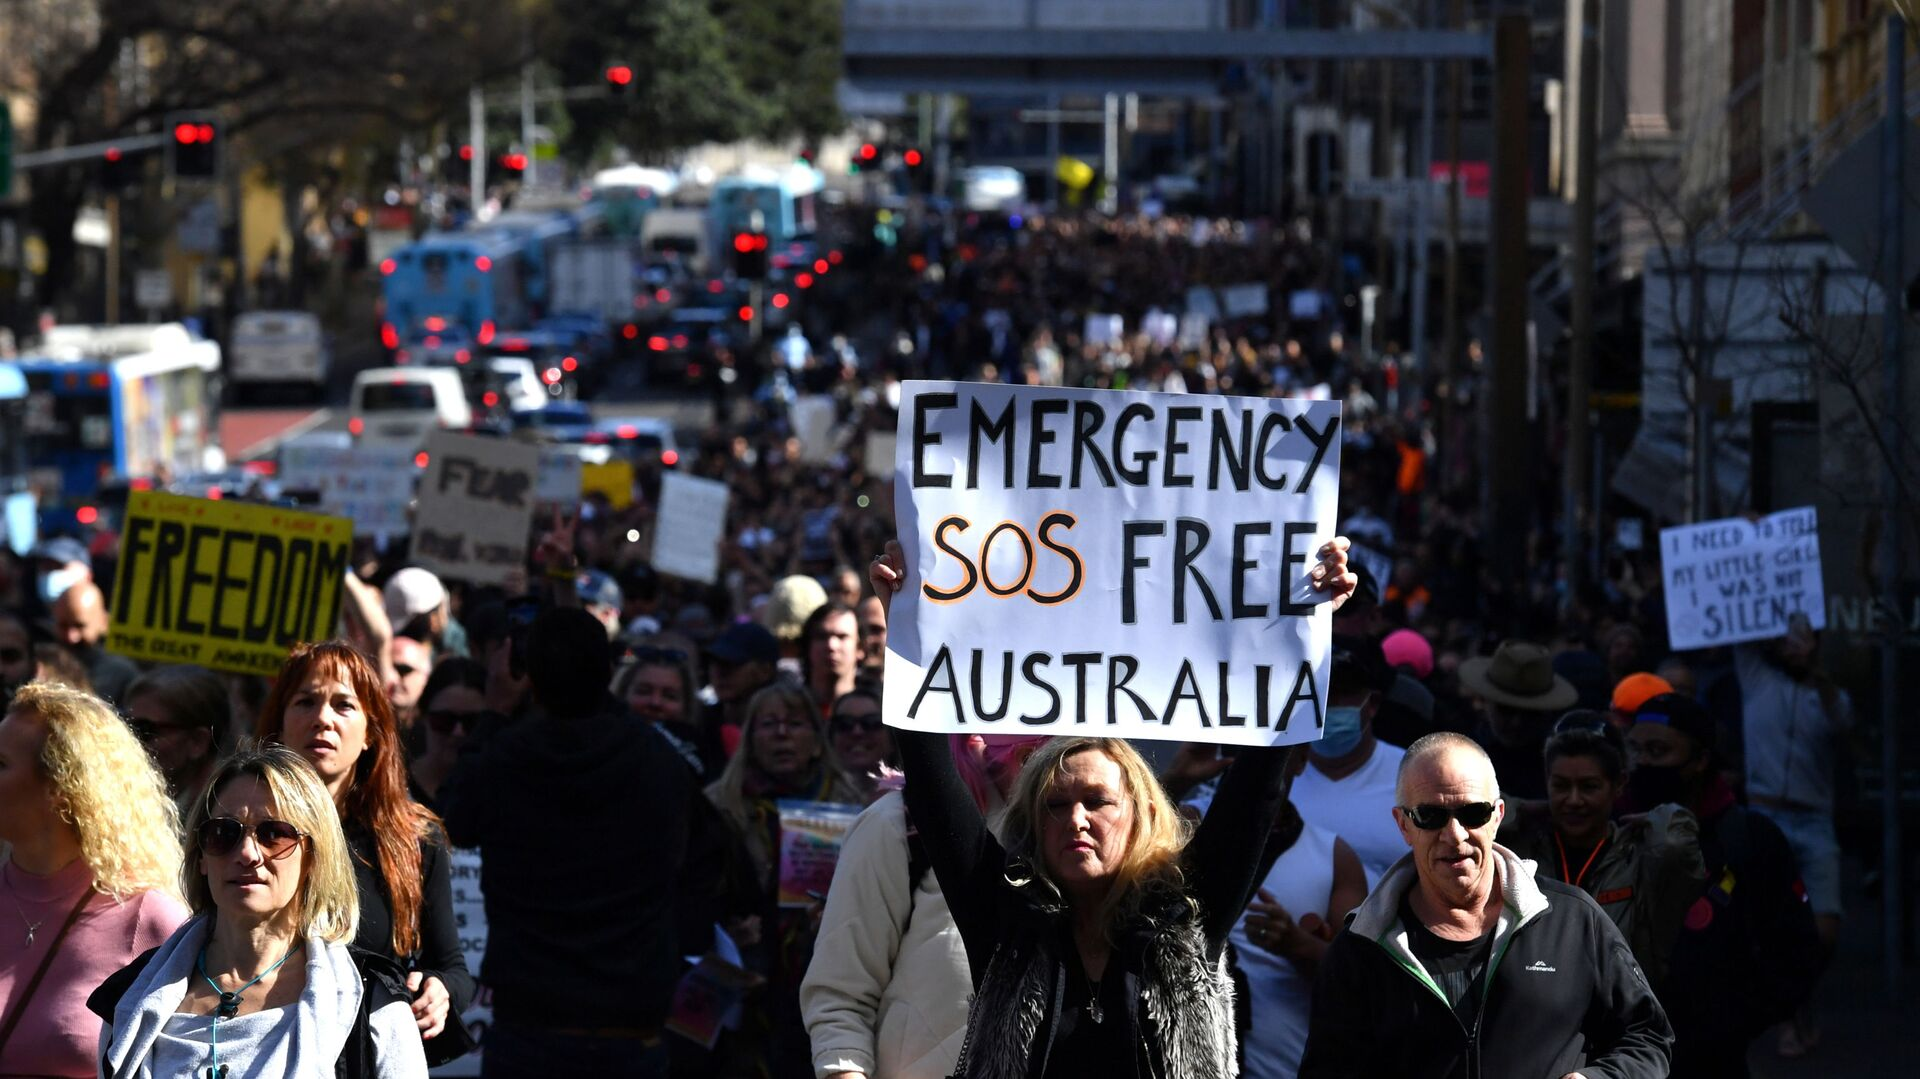 Protesters march through the city centre during an anti-lockdown rally as an outbreak of the coronavirus disease (COVID-19) affects Sydney, Australia, July 24, 2021. - Sputnik International, 1920, 25.07.2021